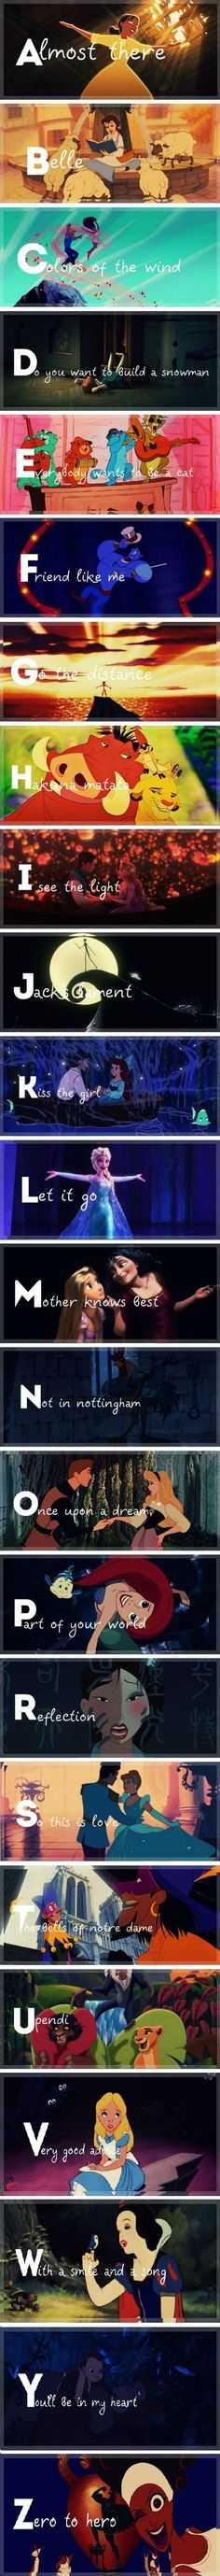 The Alphabet According To Disney (With some Tim Burton in there, just go through you off. )